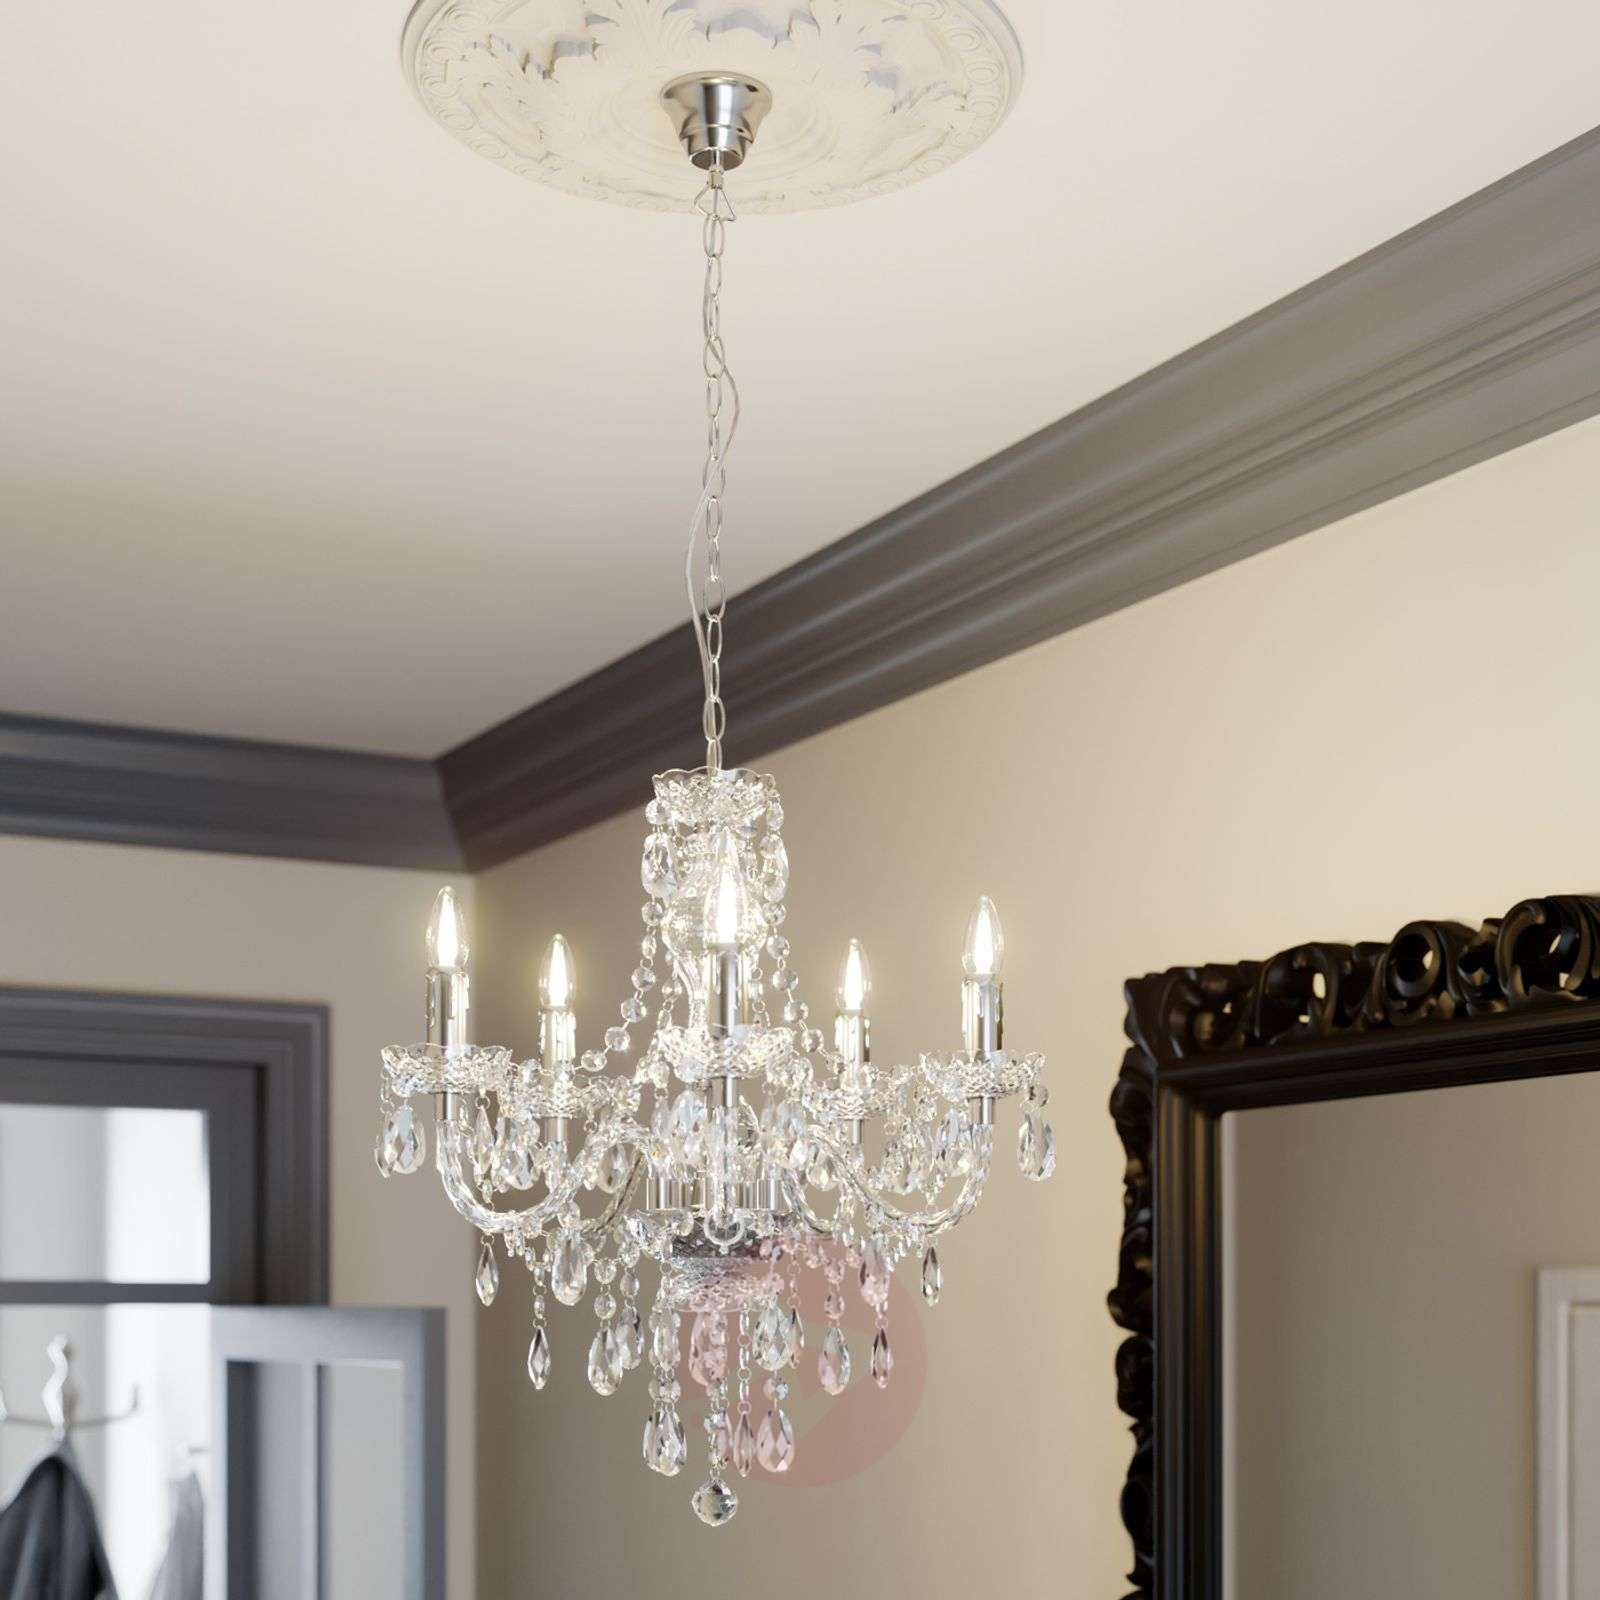 Five-bulb chandelier Merida-9621171-02